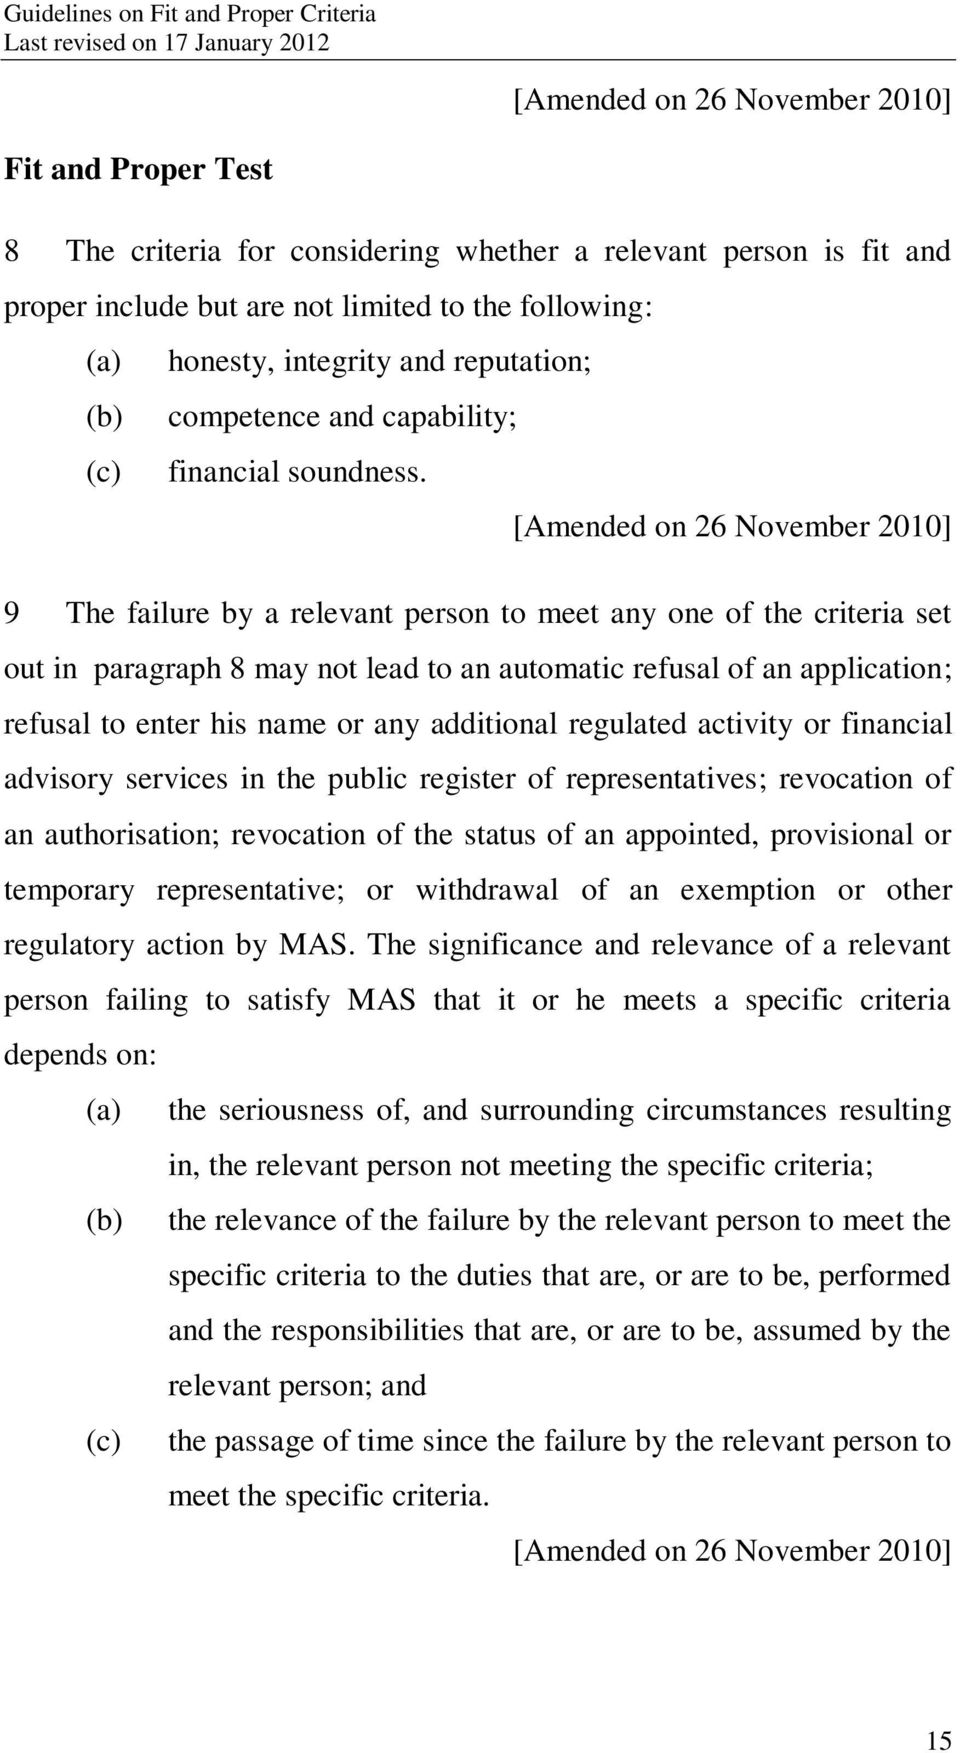 9 The failure by a relevant person to meet any one of the criteria set out in paragraph 8 may not lead to an automatic refusal of an application; refusal to enter his name or any additional regulated